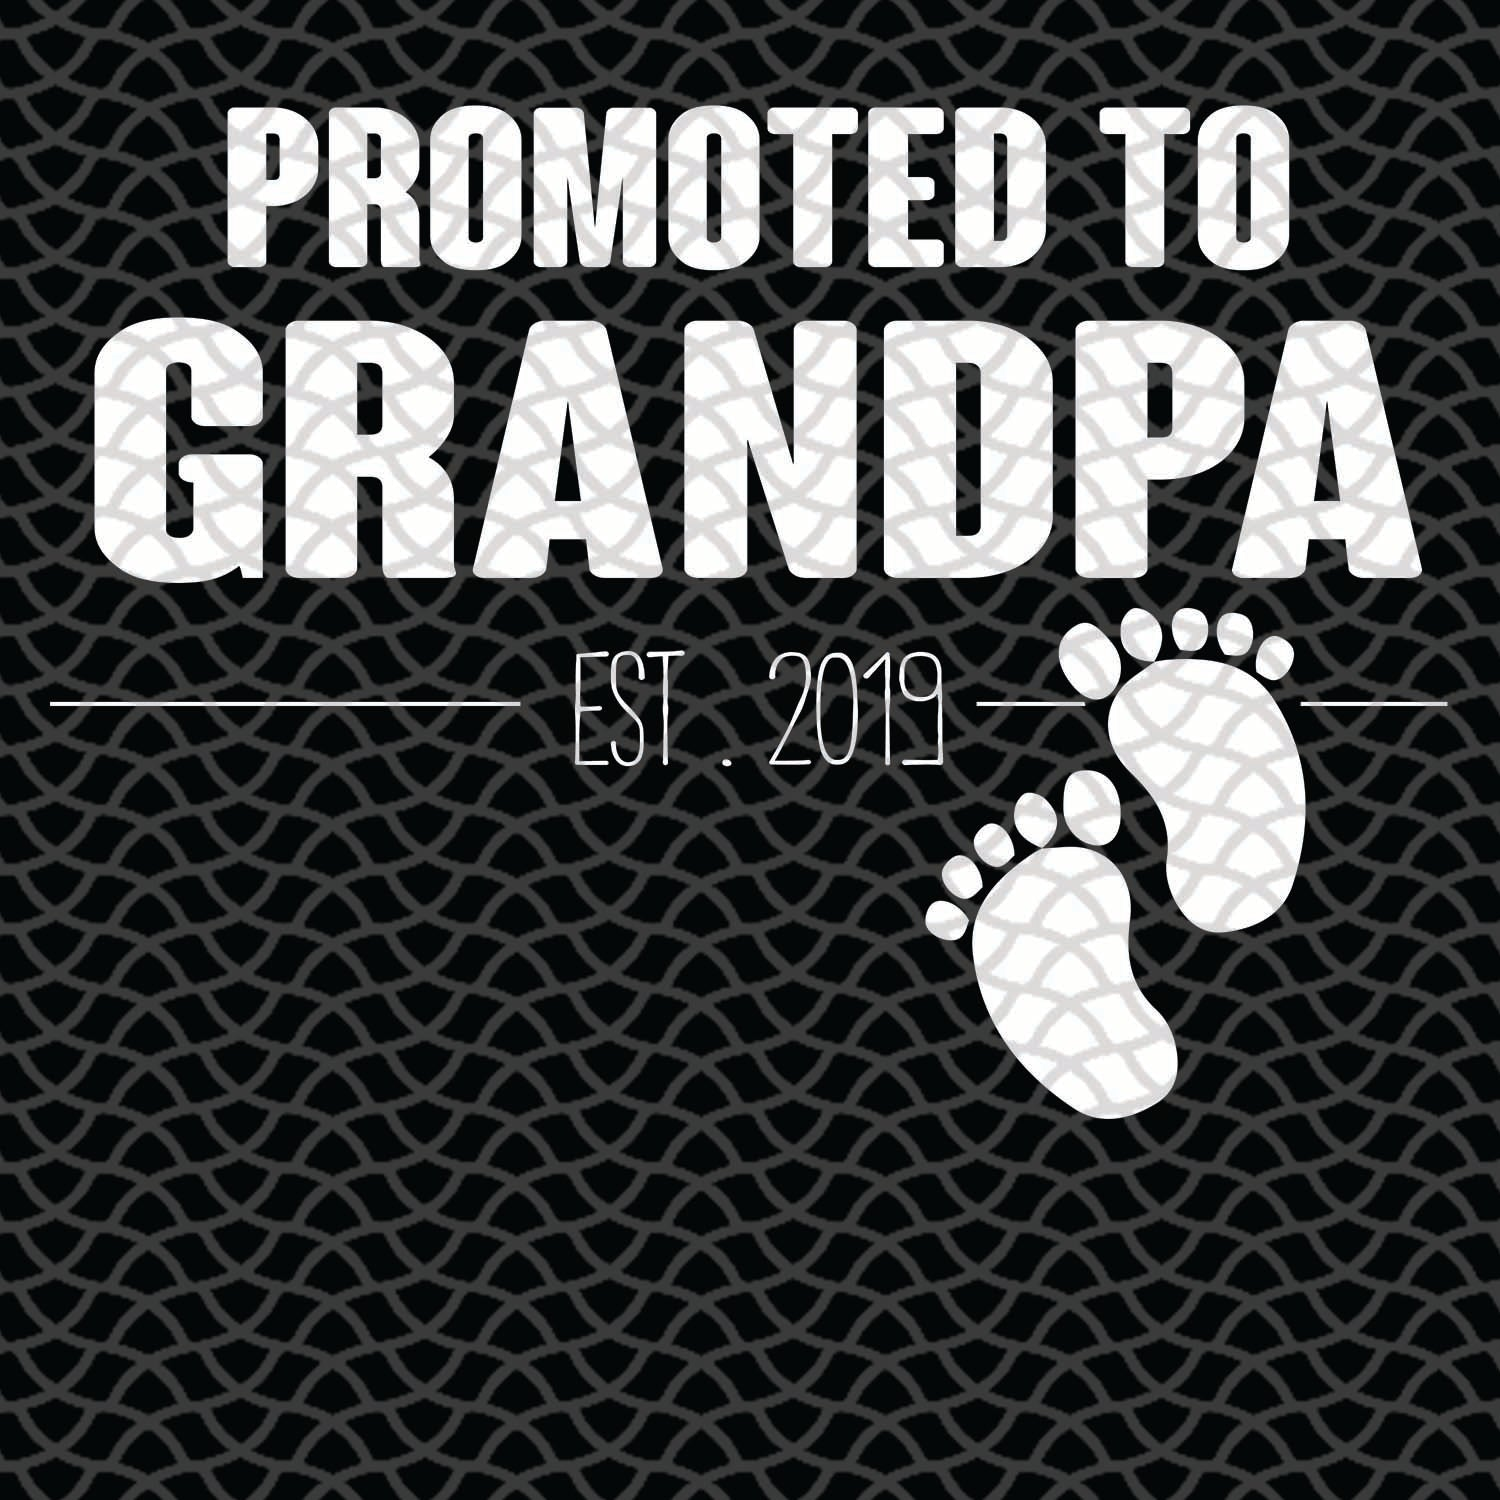 Promoted to grandpa est 2019, grandpa svg, grandpa gift, grandpa shirt, gift for grandpa, grandpa birthday gifts,family svg, family shirt,family gift,trending svg, Files For Silhouette, Files For Cricut, SVG, DXF, EPS, PNG, Instant Download